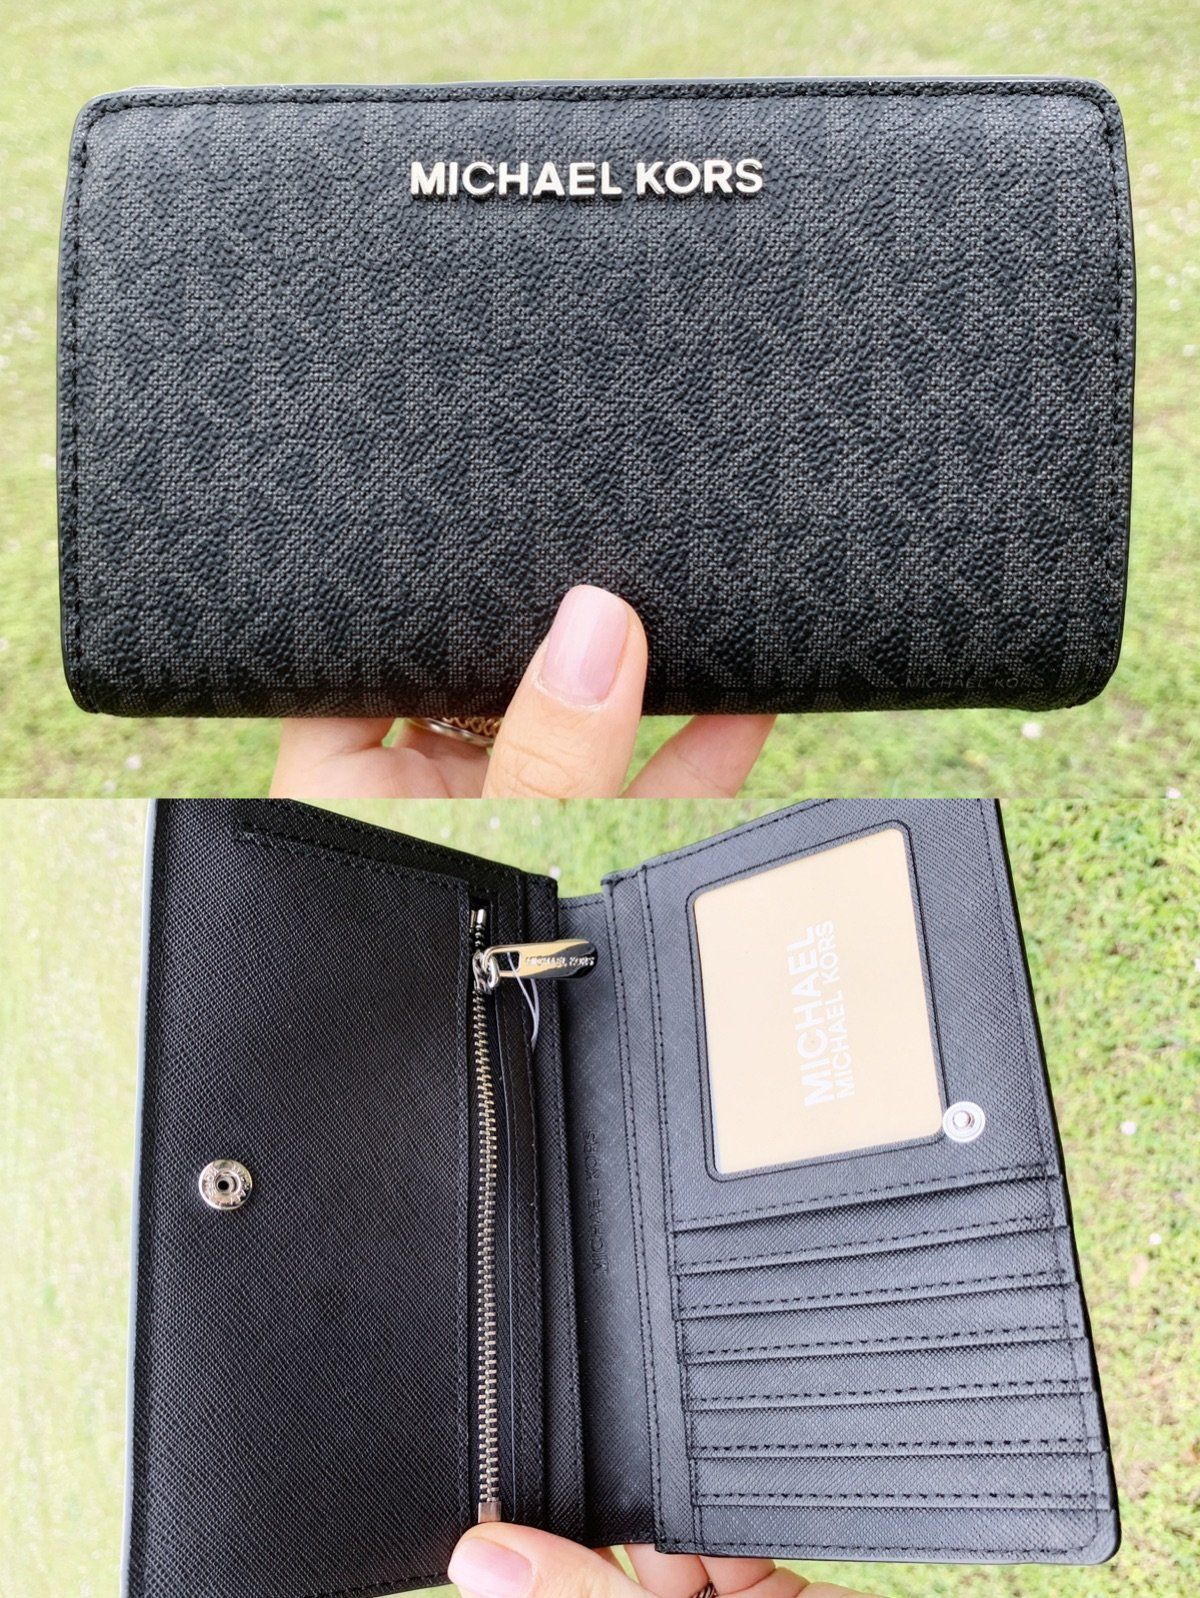 910b1f73a514 Michael Kors Jet Set Travel PVC Slim Bifold Wallet Black MK  ebaystore   poshboss  top  amazondeals  poshfashion  ebayseller  amazon  Poshmark   Handbags ...